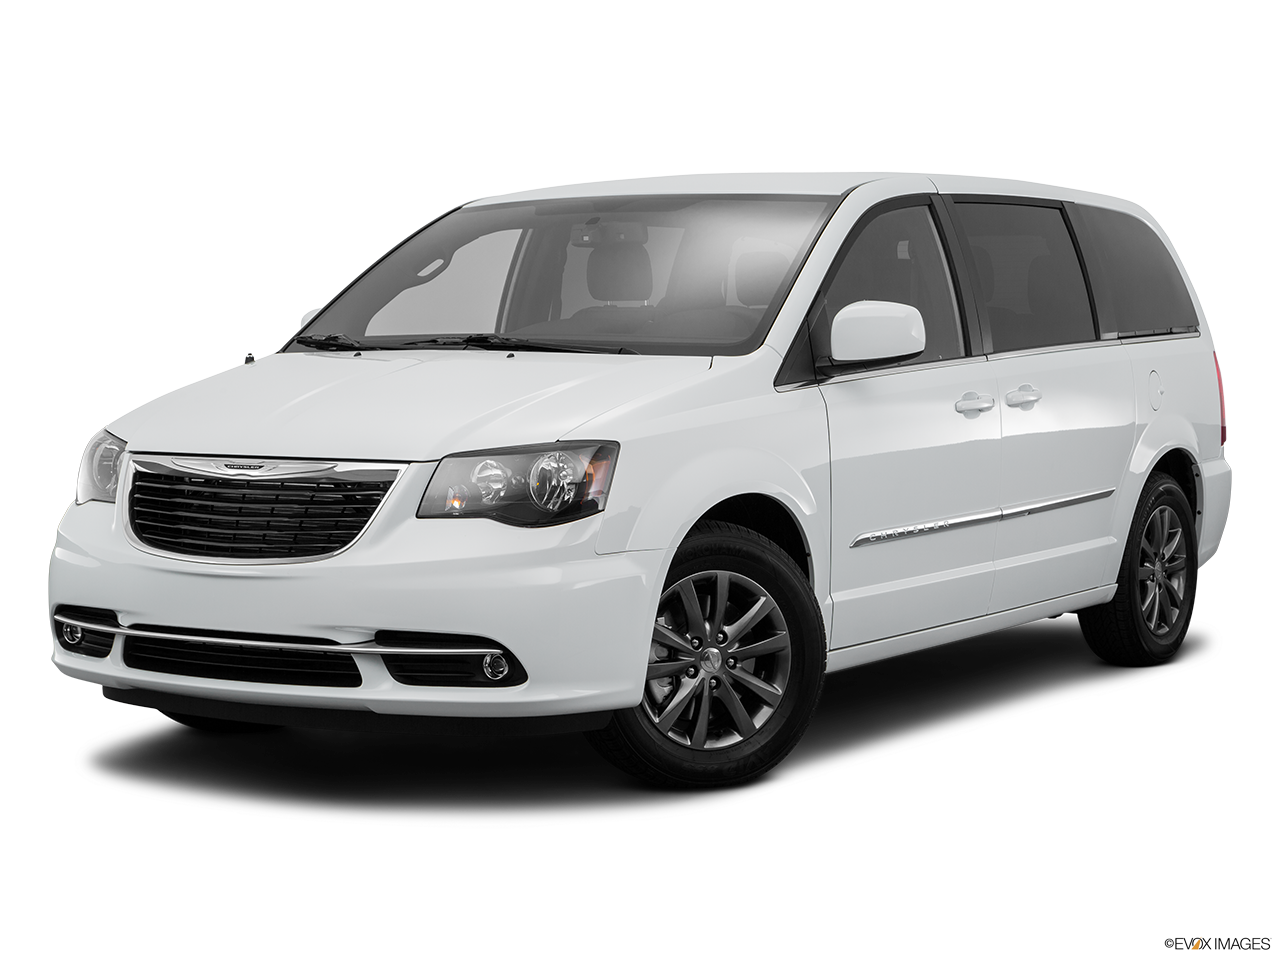 Test Drive A 2016 Chrysler Town and Country at Moss Bros Chrysler Dodge Jeep Ram San Bernardino in San Bernardino